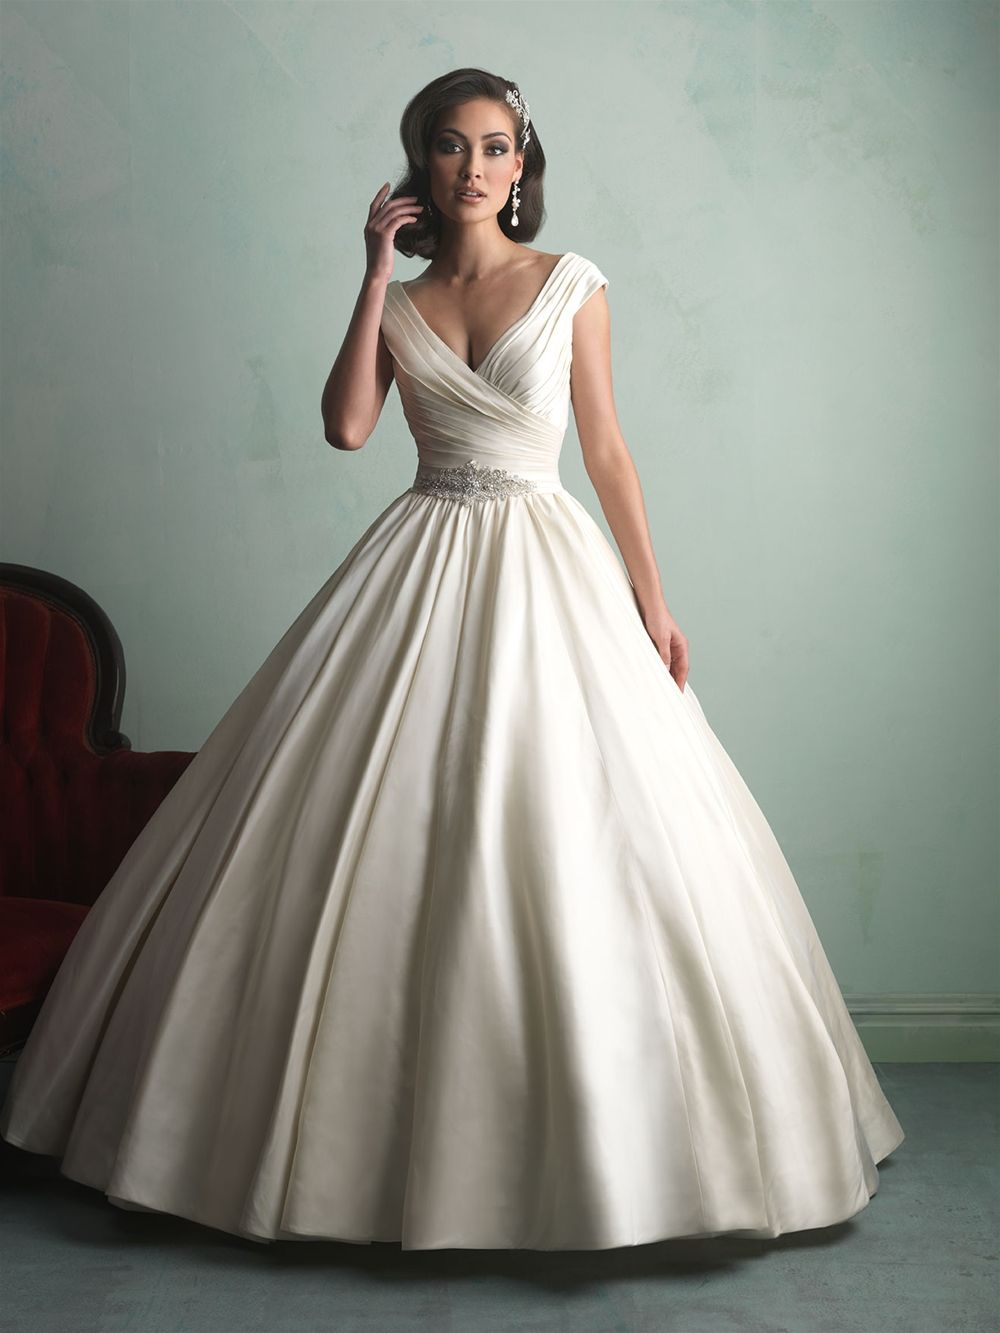 Florentina by vera wang bridal style pinterest dress ideas the 25 most popular wedding gowns of 2014 ombrellifo Images